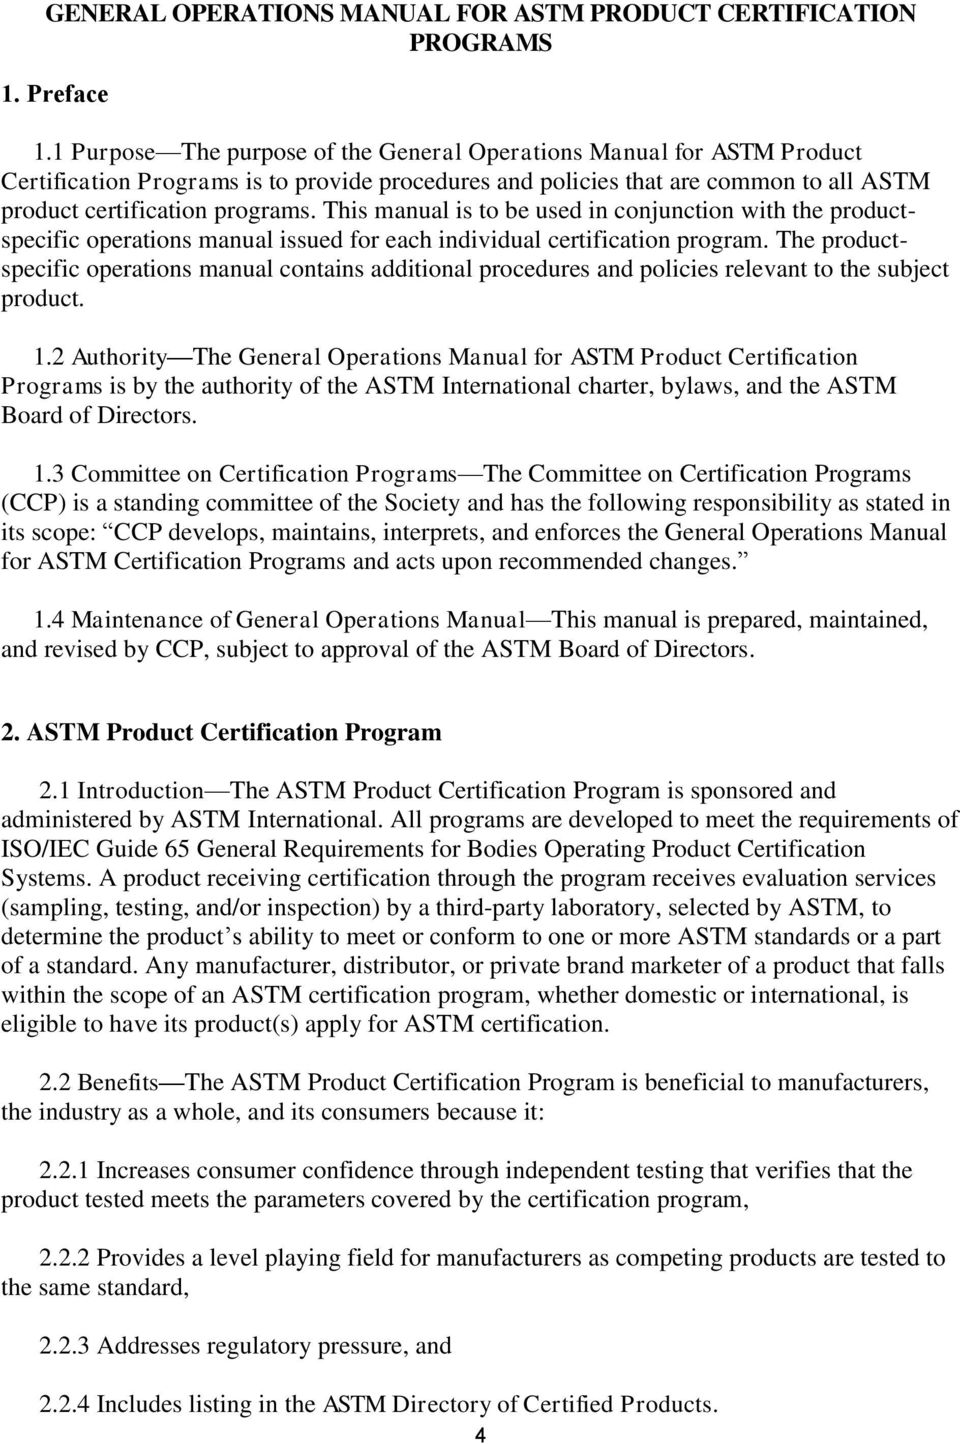 General Operations Manual For Astm Product Certification Program Pdf